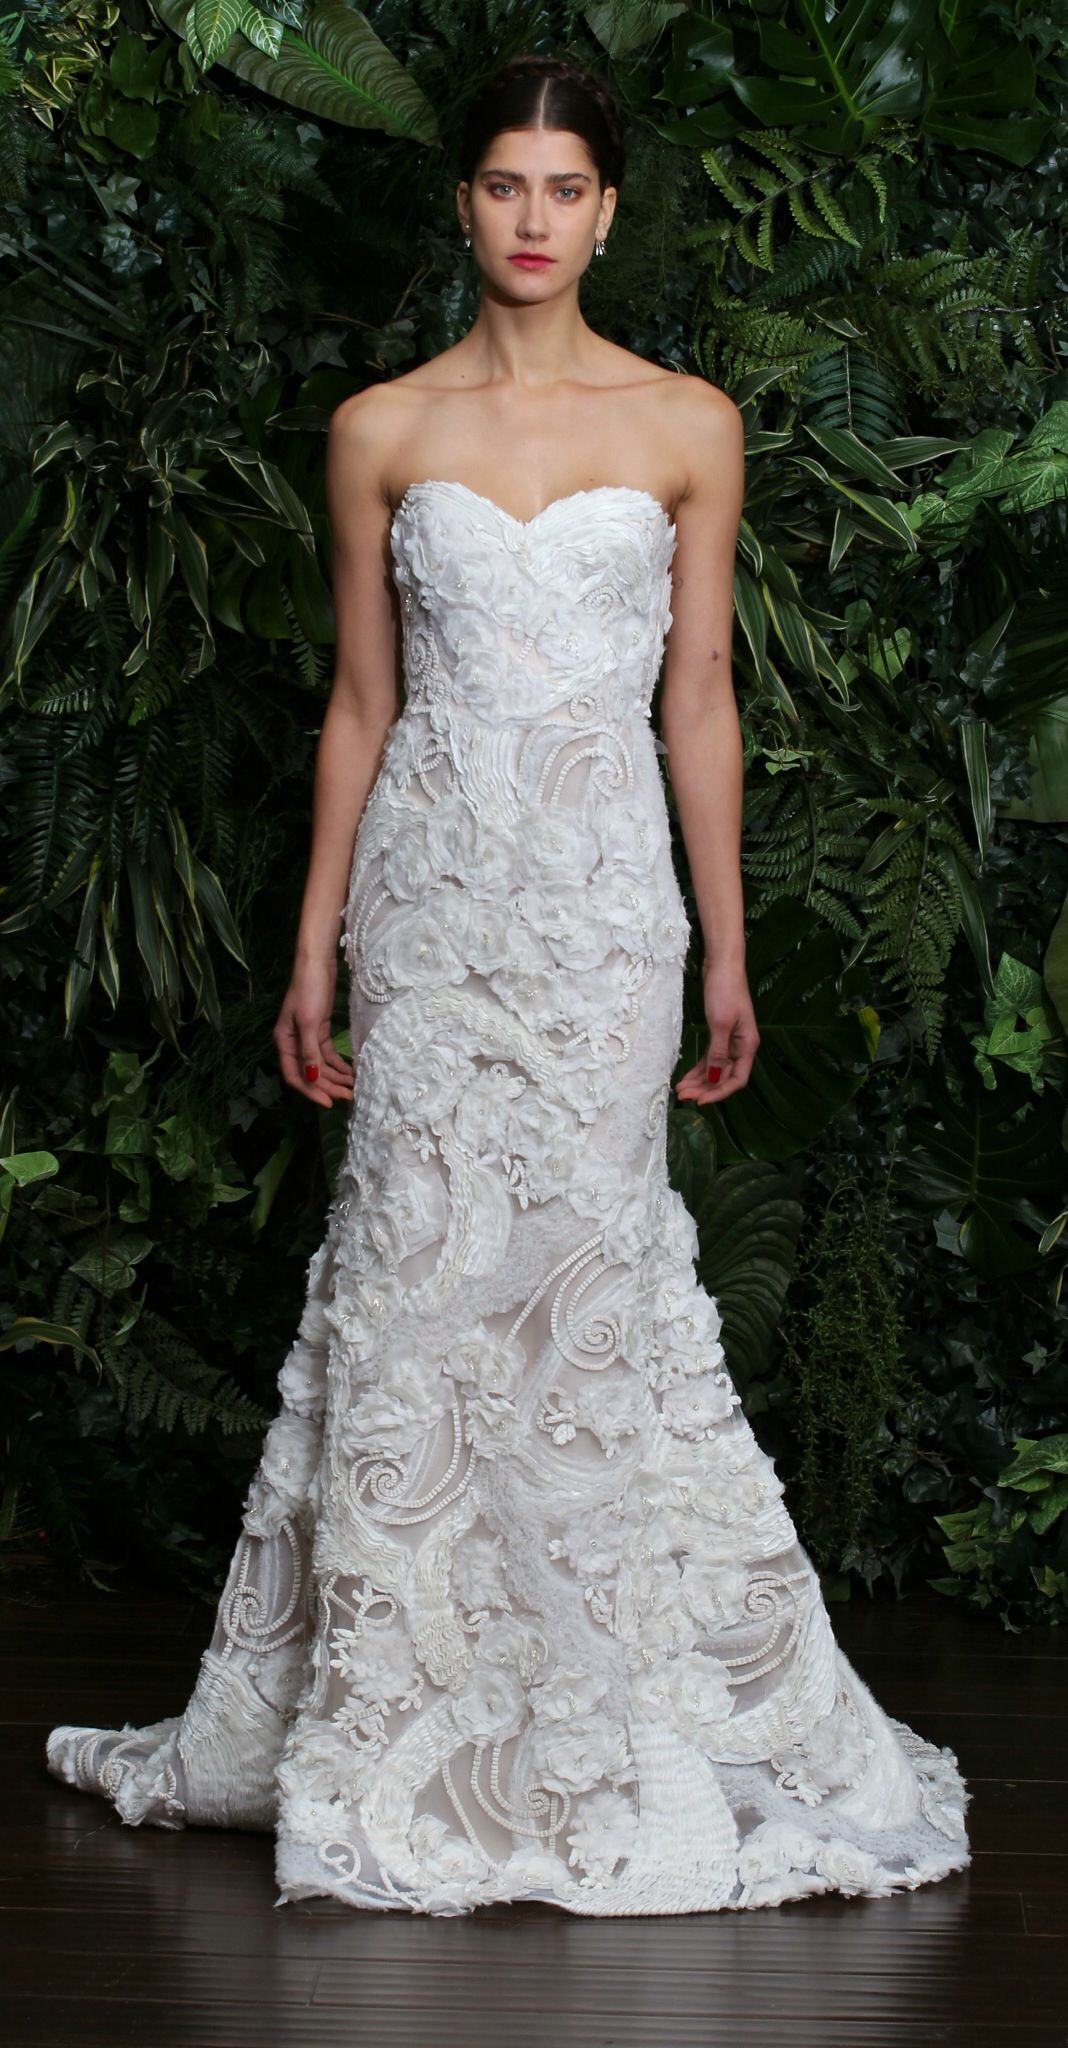 Naeem Khan Bridal Collection At BG Bridal. 212 872 8957